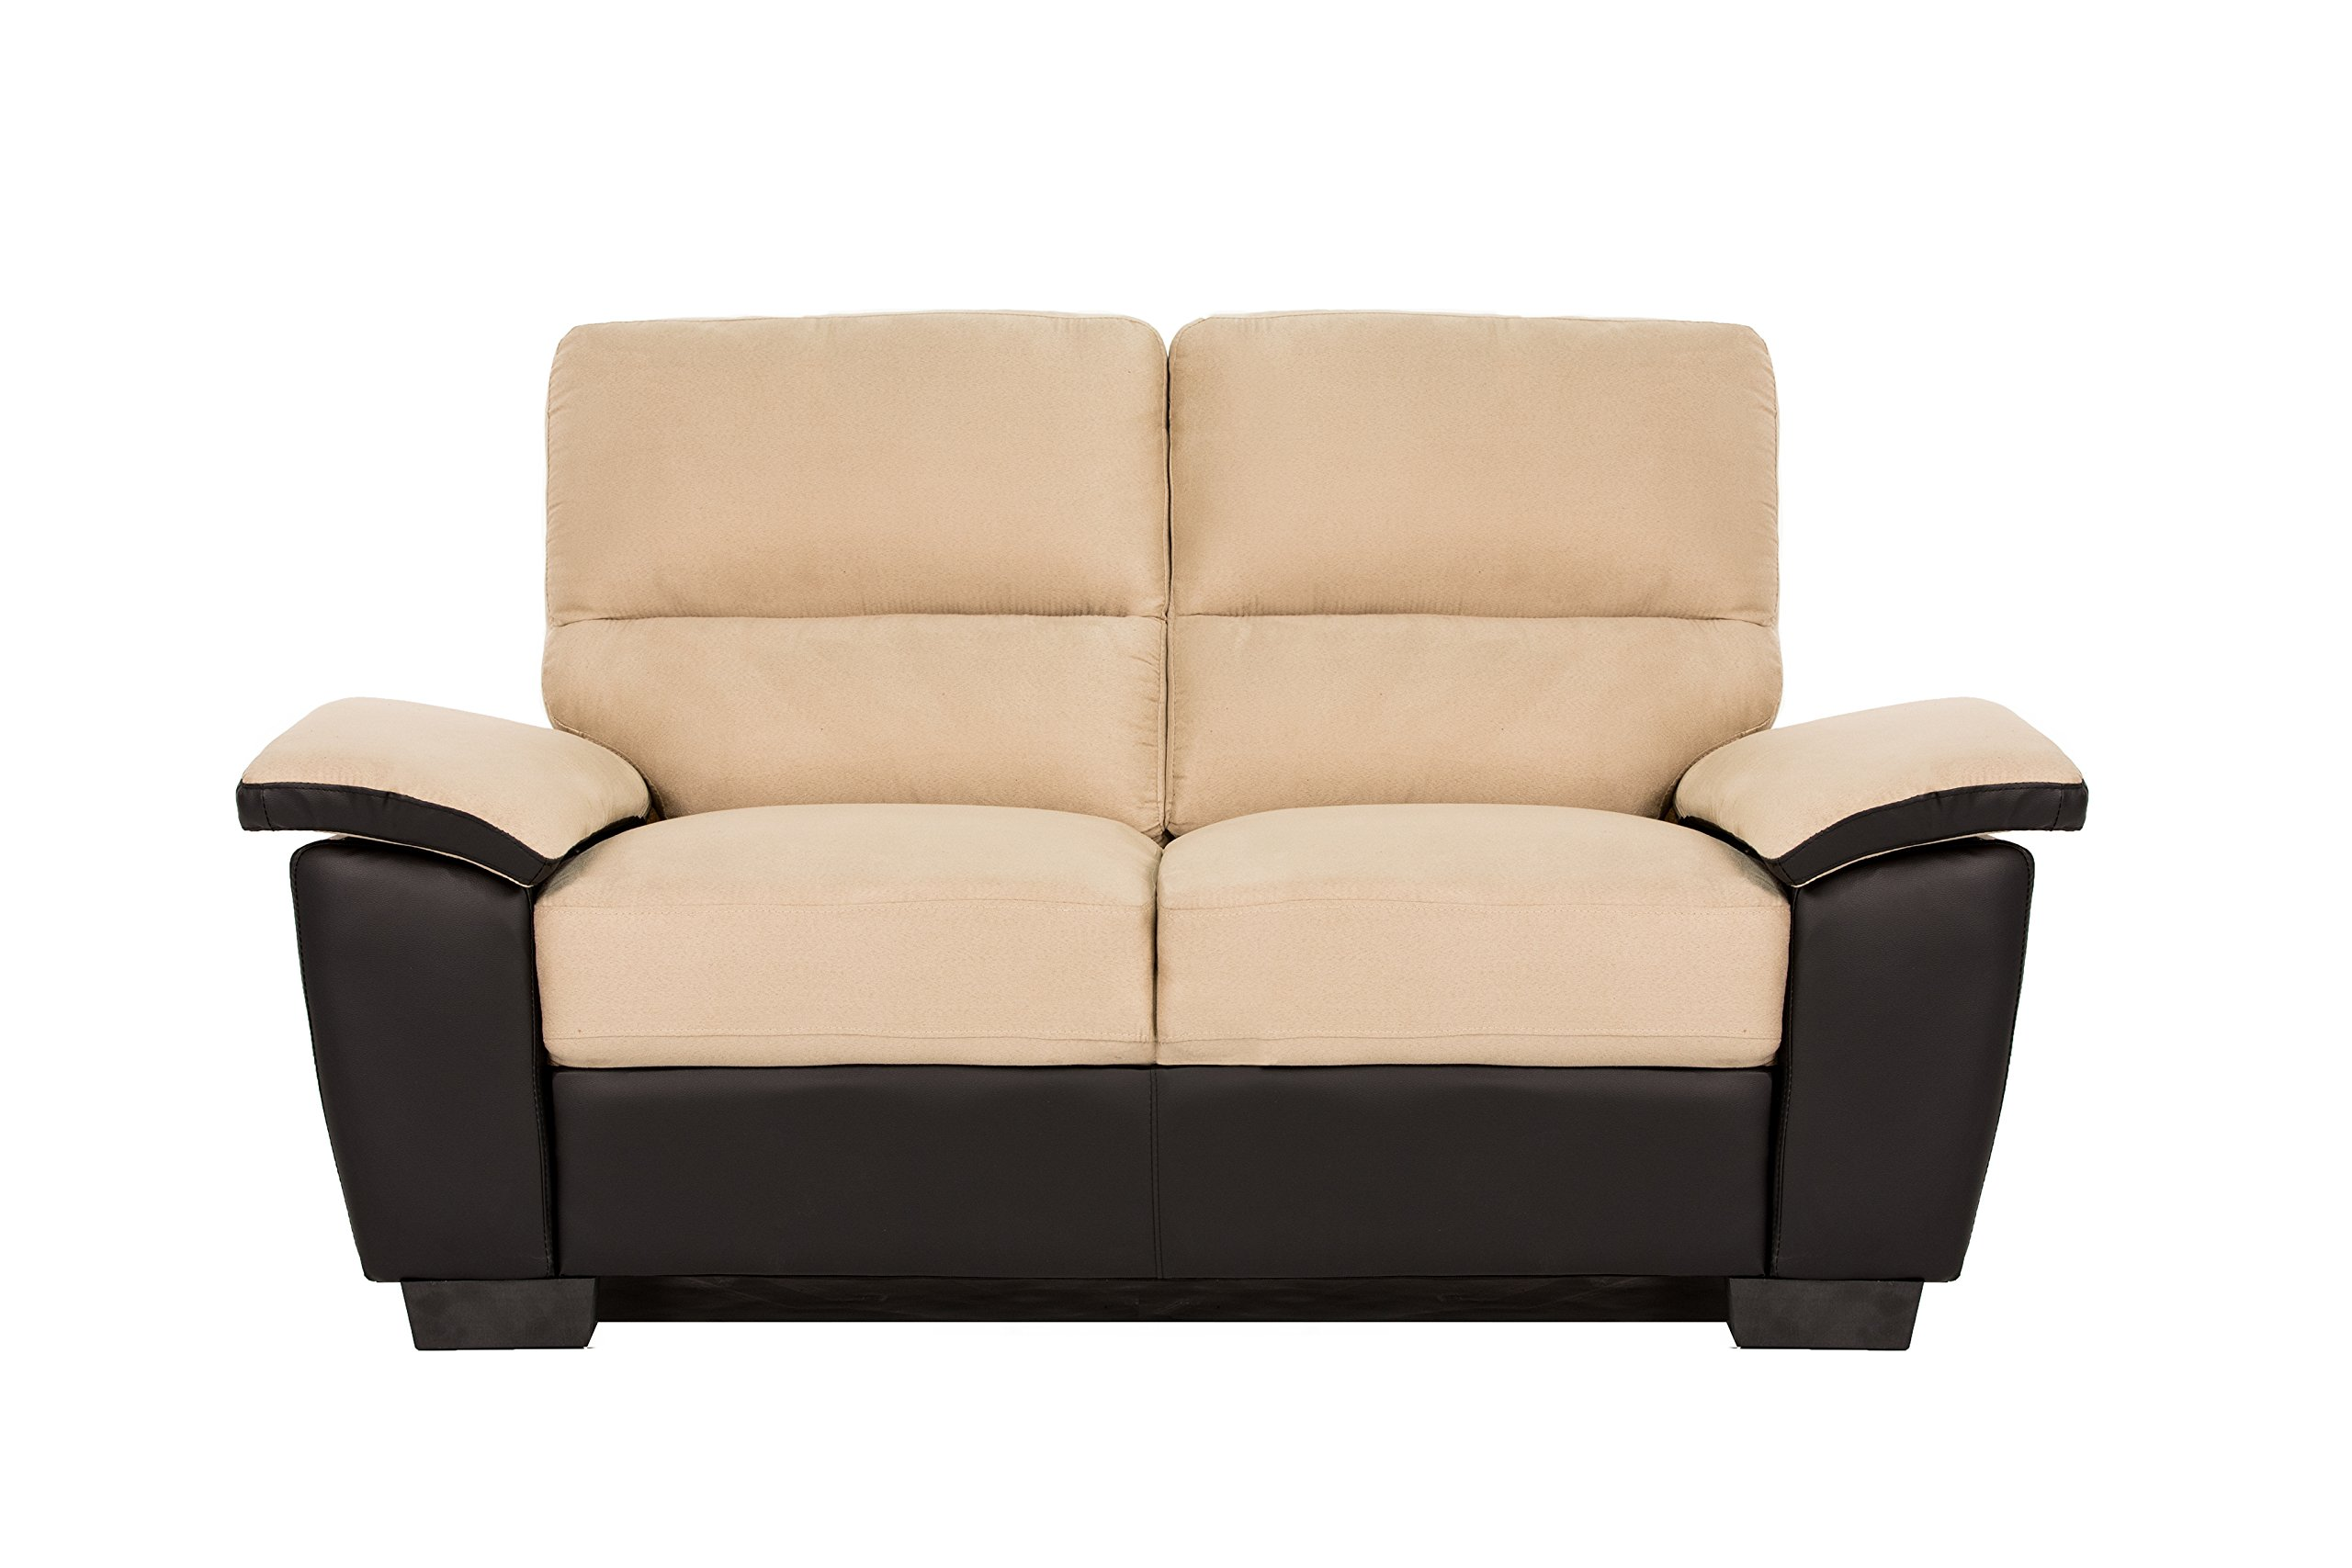 Divano Roma Classic Soft Microfiber and Bonded Leather Living Room Furniture by Madison Home (Image #2)